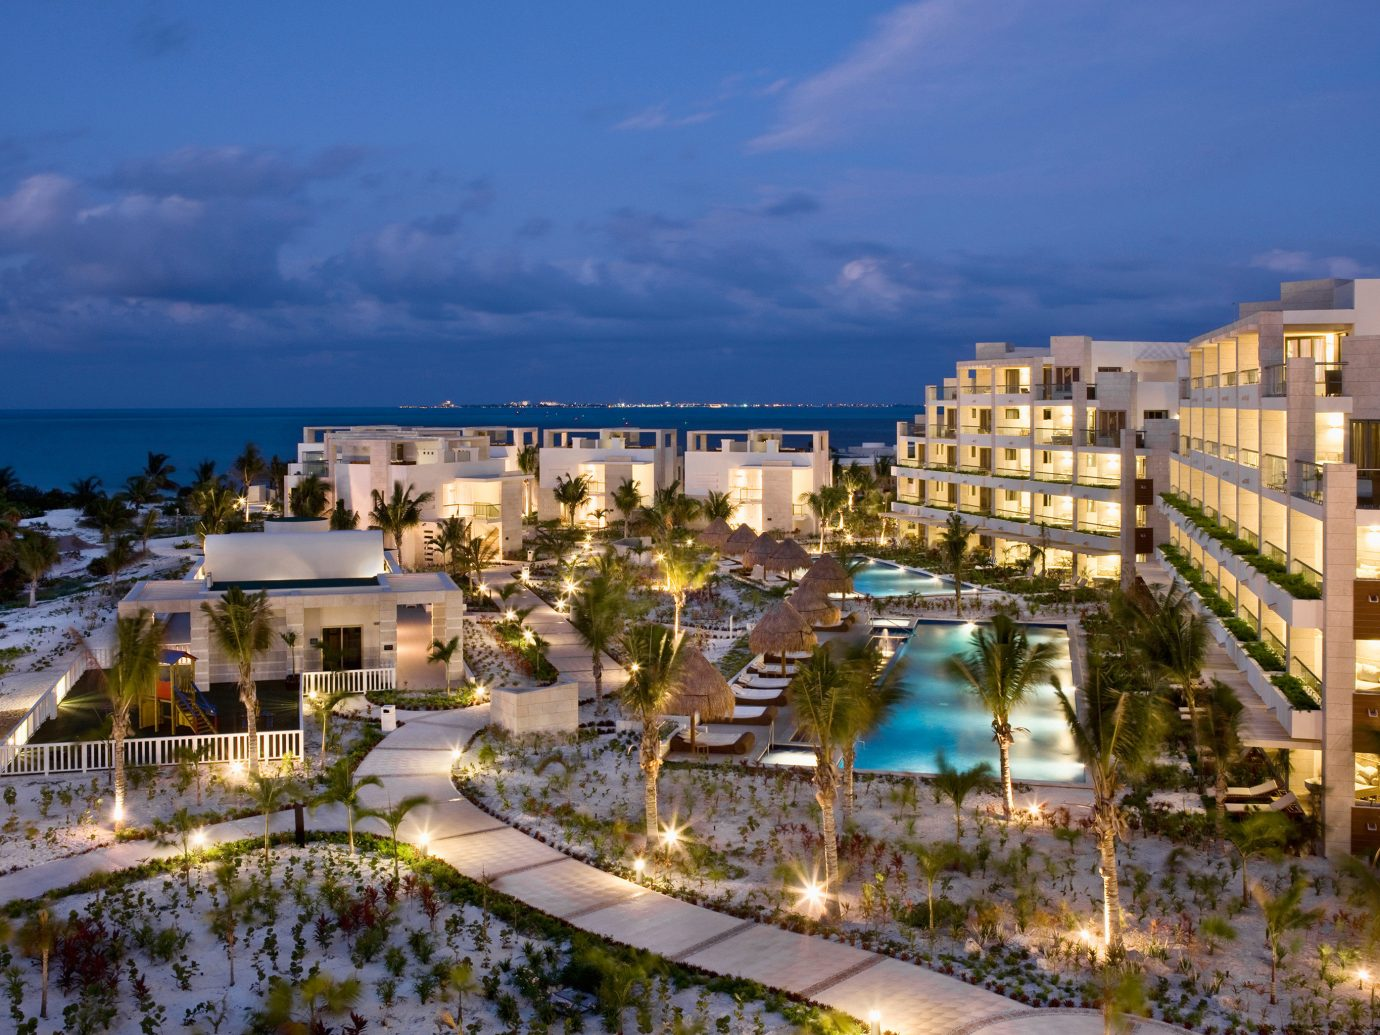 Grounds Hotels Luxury Modern Tropical outdoor sky building Town cityscape City neighbourhood Resort residential area vacation tourism Downtown estate marina Coast Sea skyline aerial photography Harbor